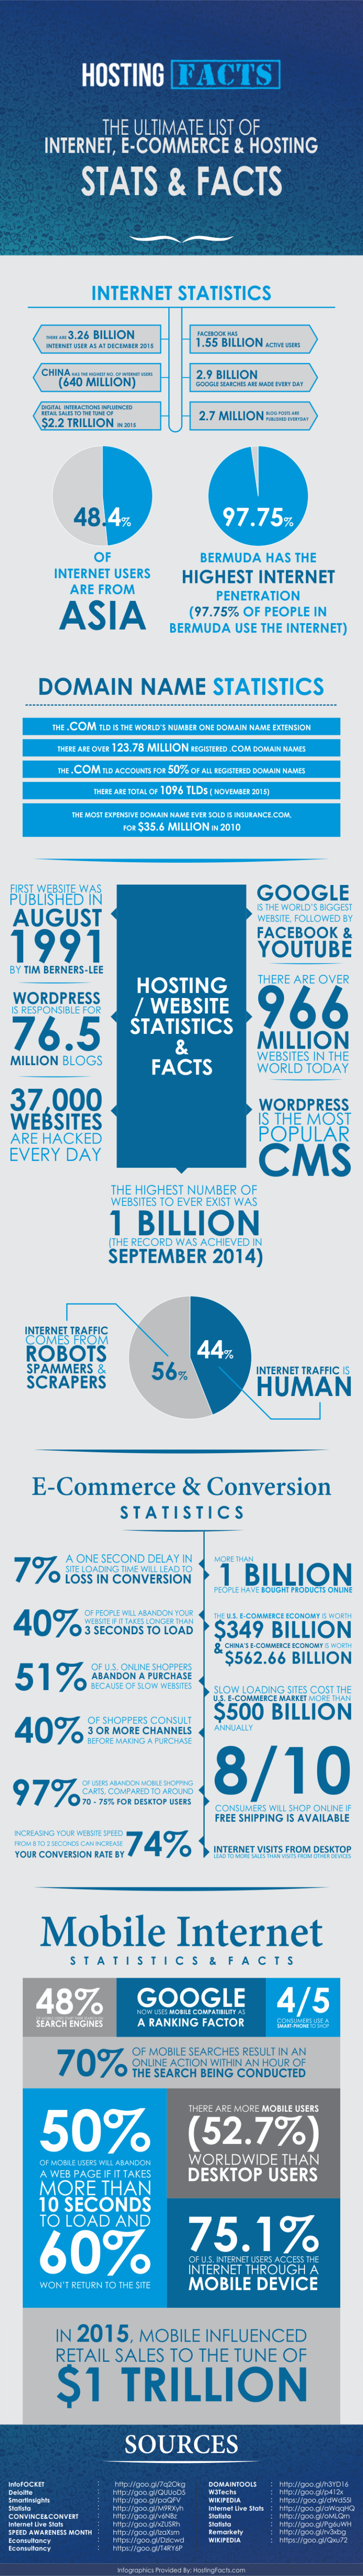 hosting-facts-infographic-768x5449